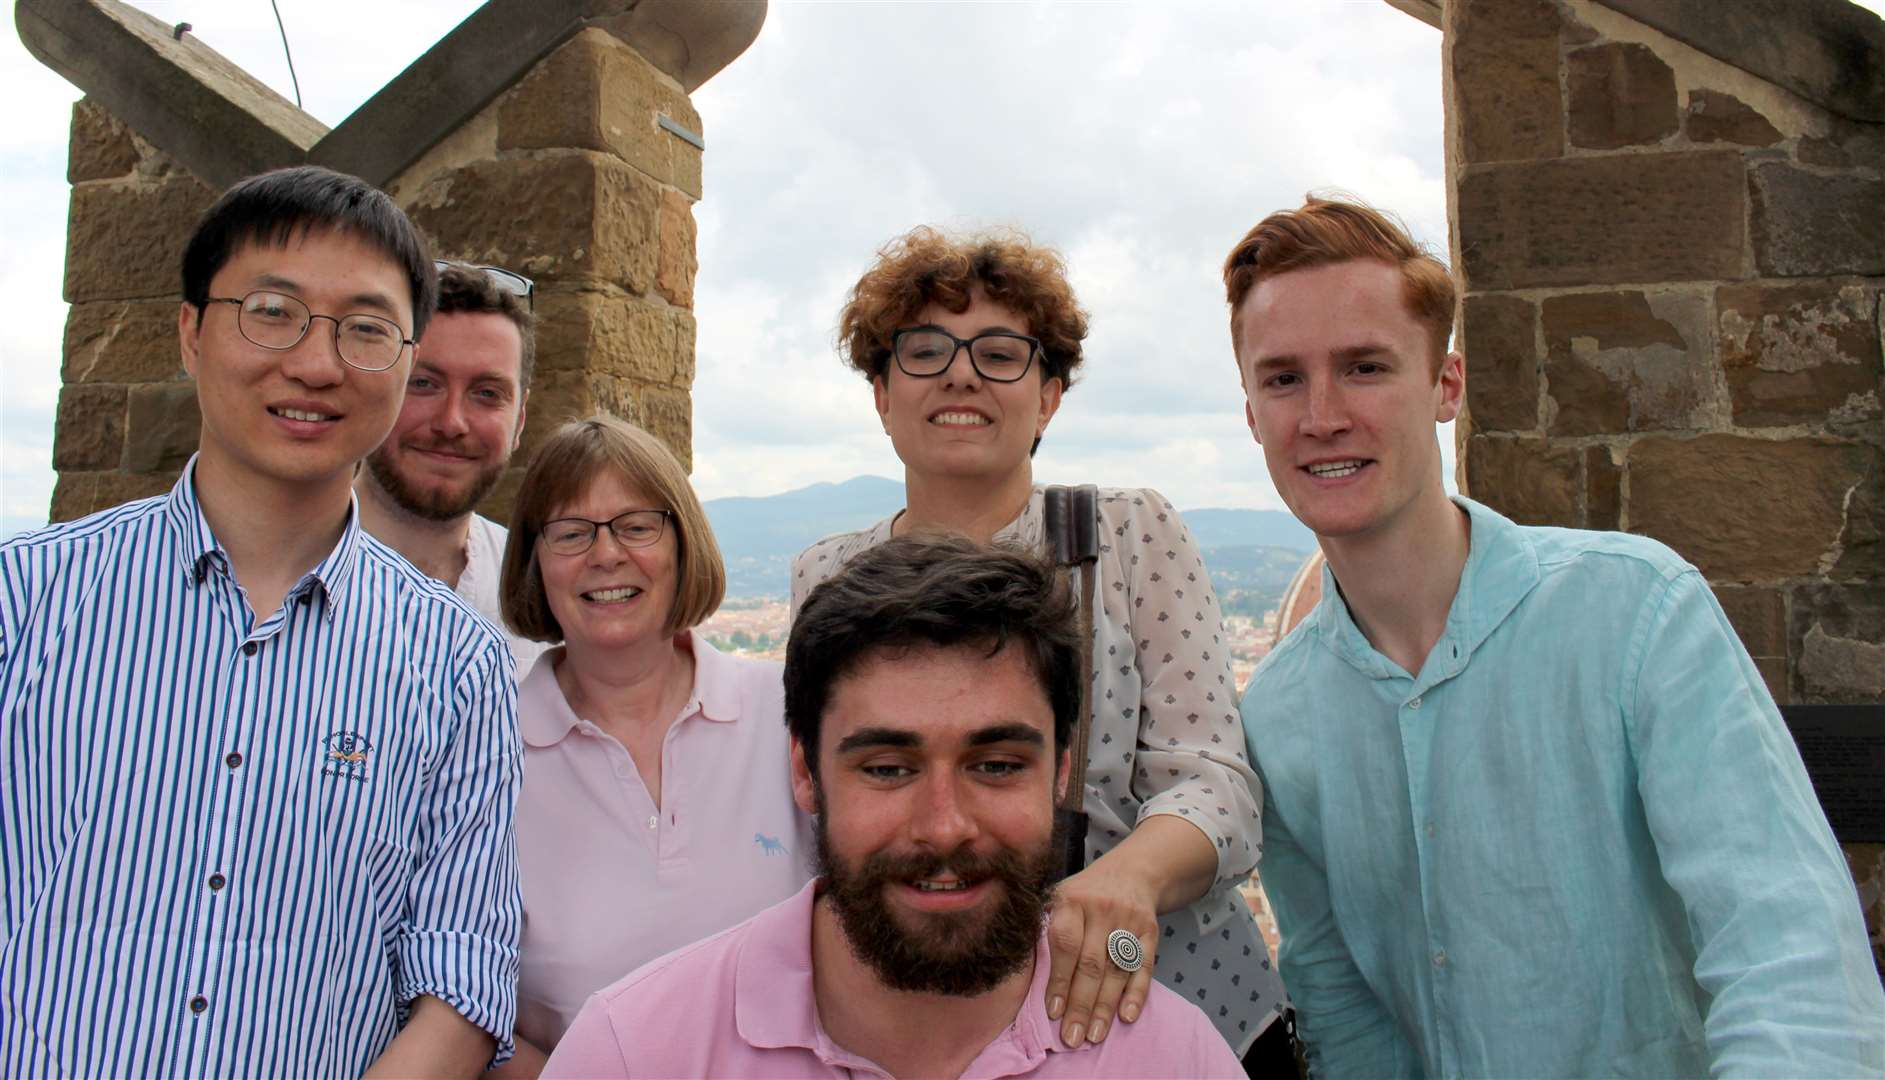 New Year Honours Professor Gladden with members of her group at the ISCRE 25 Conference on chemical reaction engineering in Florence, 2018.. (25301429)